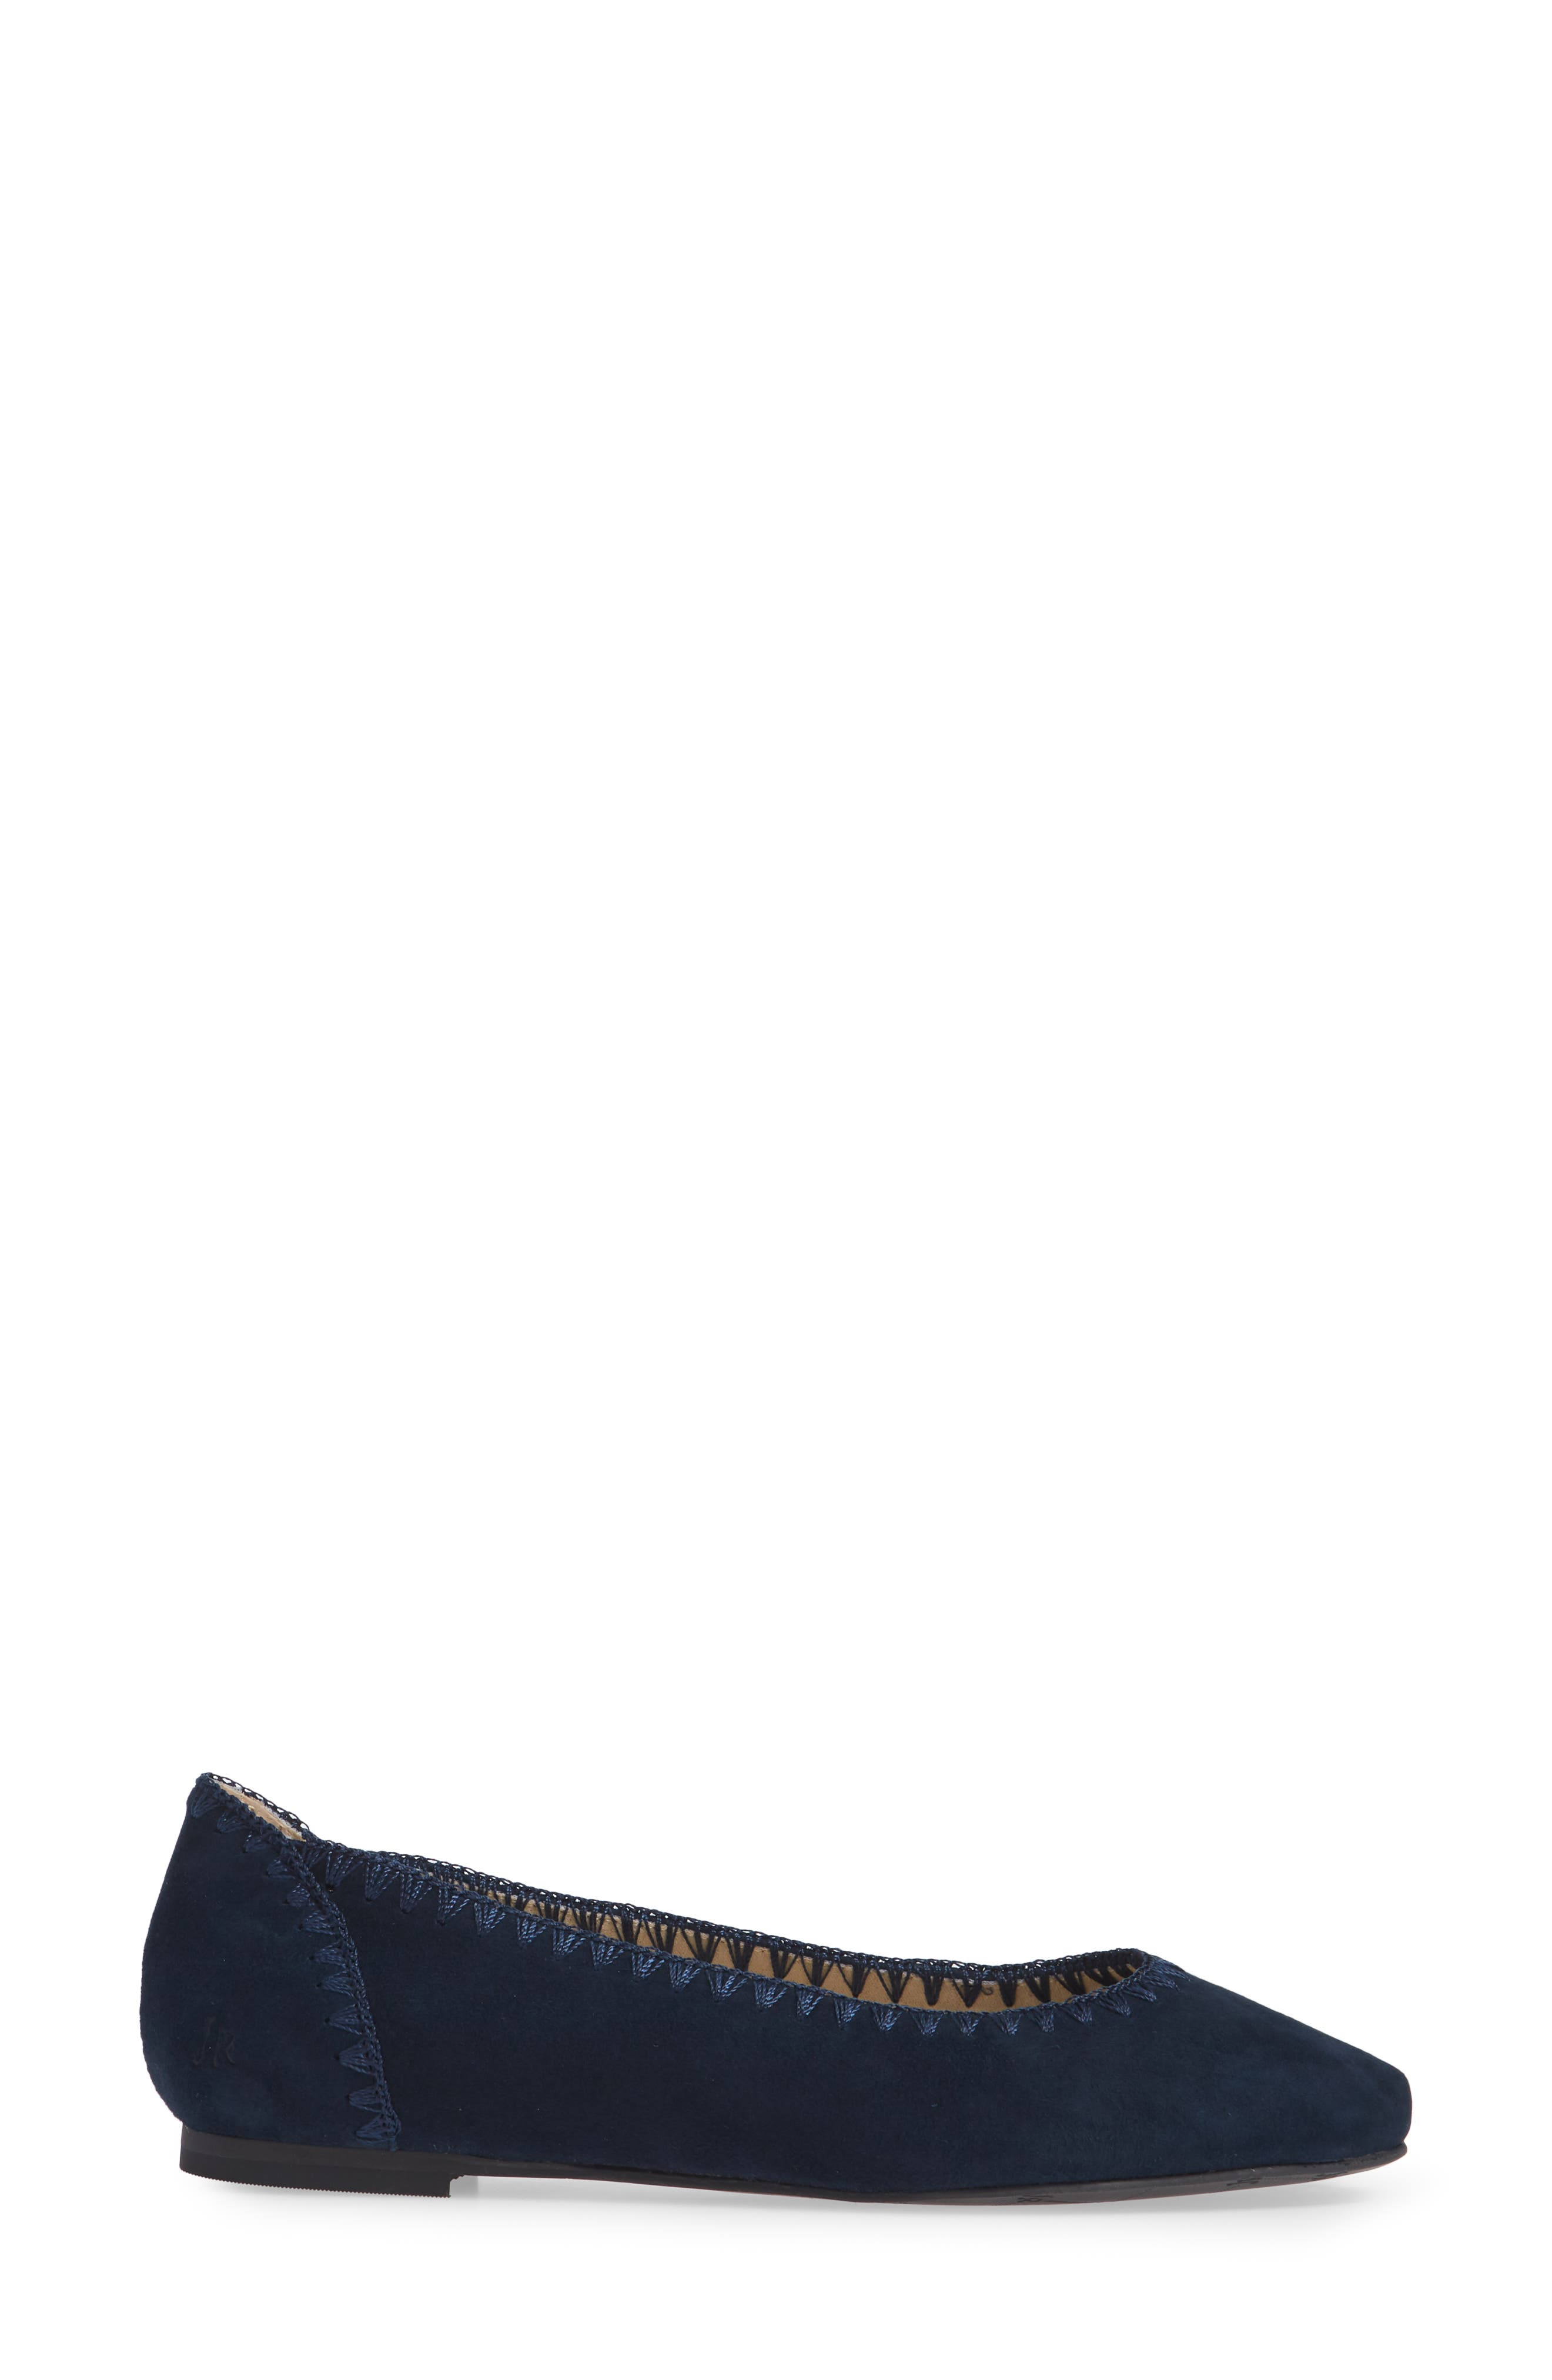 Ellie II Flat,                             Alternate thumbnail 3, color,                             MIDNIGHT BLUE SUEDE